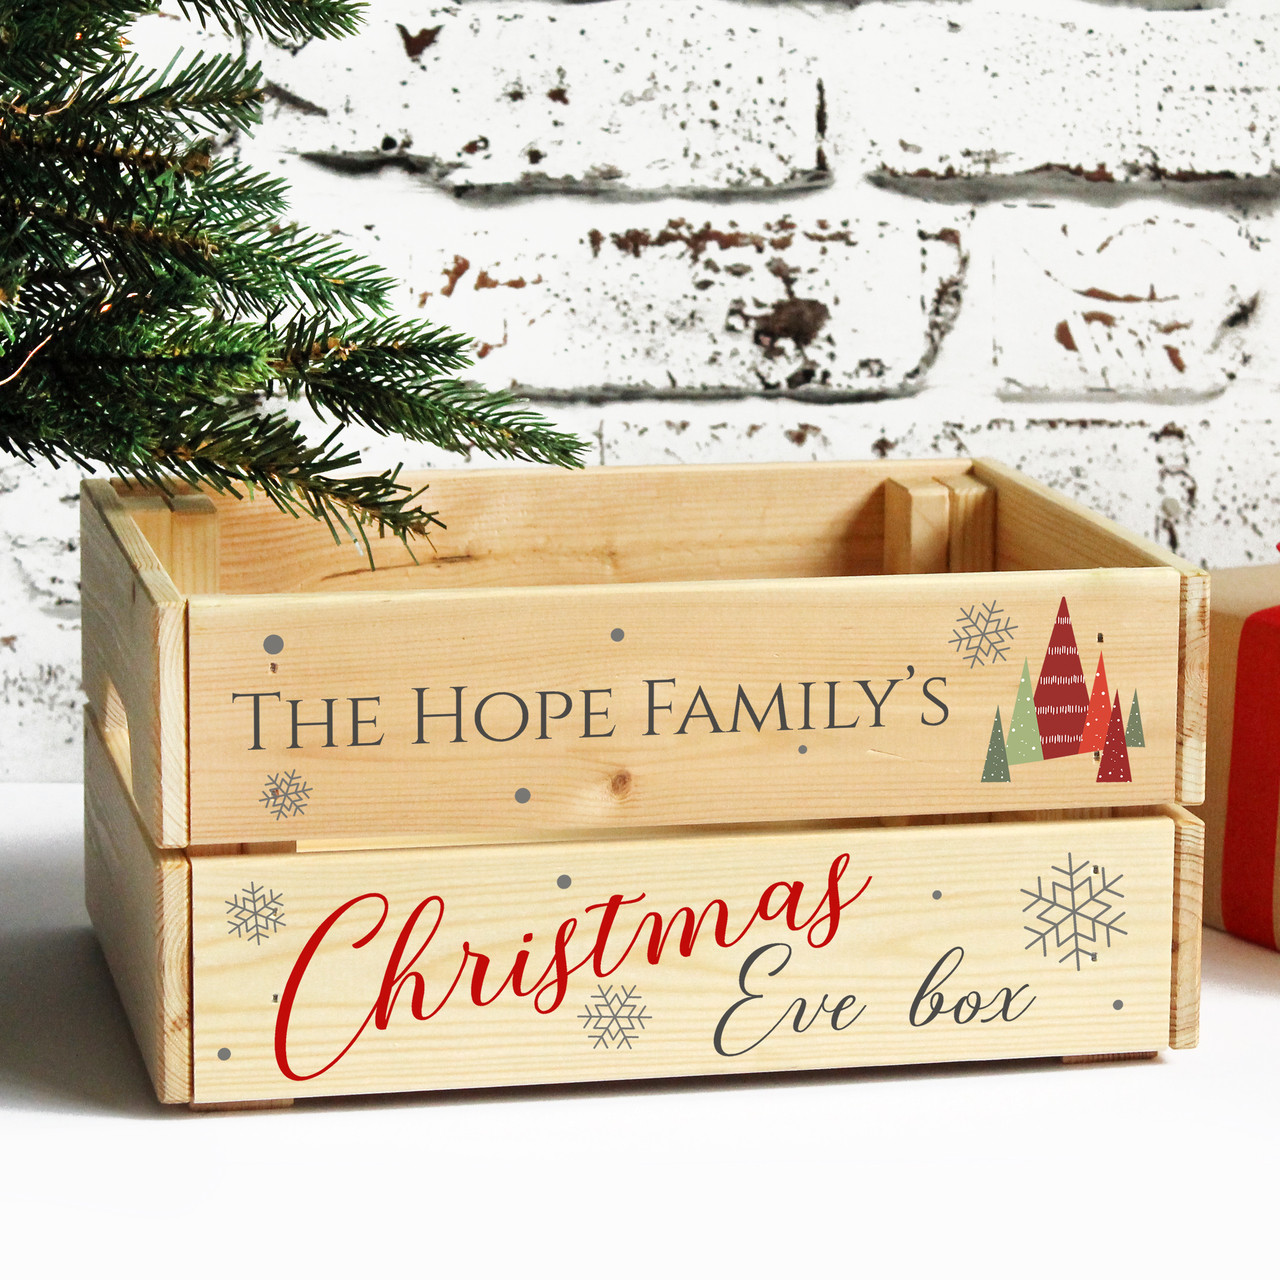 Christmas Crate Box.Personalised Kids Christmas Eve Solid Wooden Treat Box Family Xmas Crate